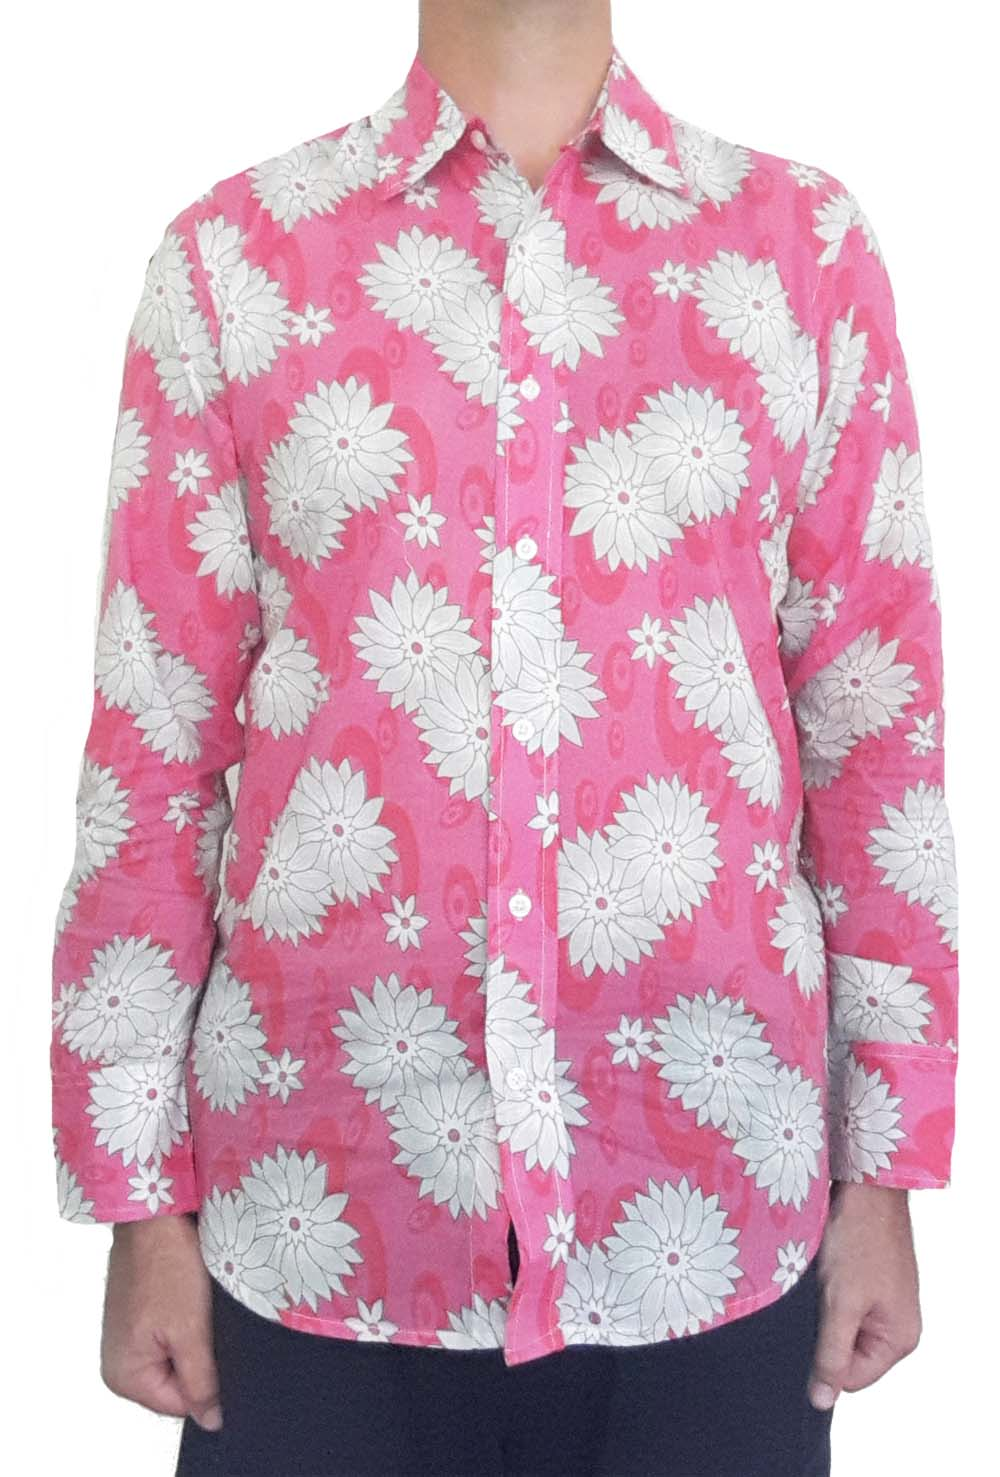 Bent BananiBent Banani Men's, 100% Cotton, Long Sleeve, Floral Shirt - White Flowers On Pink